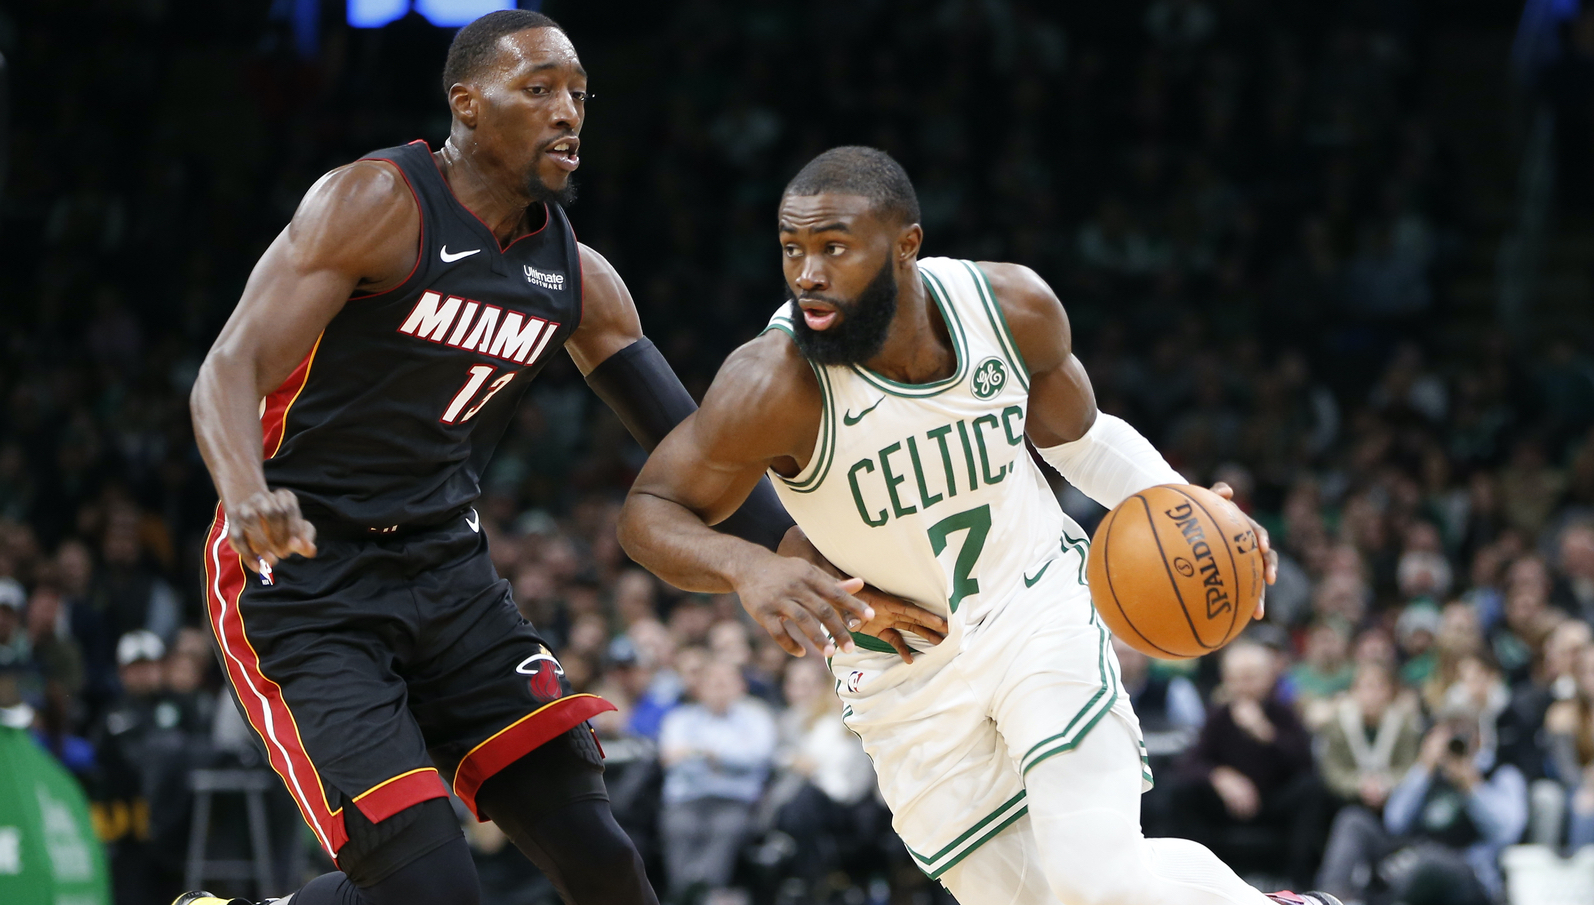 How did Celtics fare vs. Heat during season? Here's a refresher